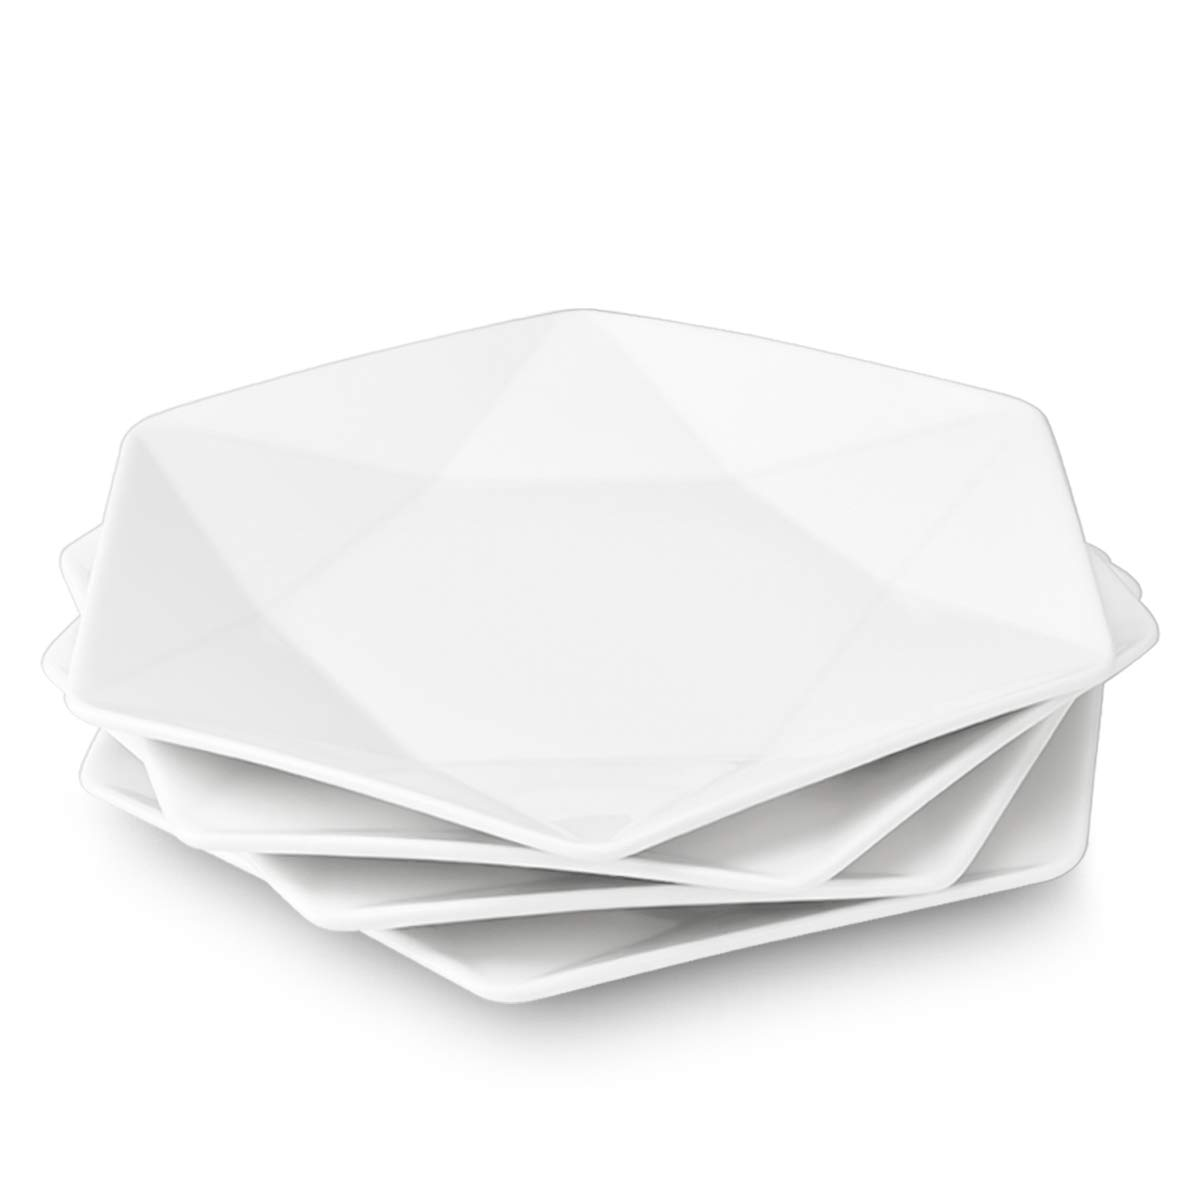 "Delling Star-Geometric 11""White Dinner Plates, Large Serving Platters Dessert Salad Plates for Meat, Appetizers, Dessert, Sushi, Party ,Set of 4"